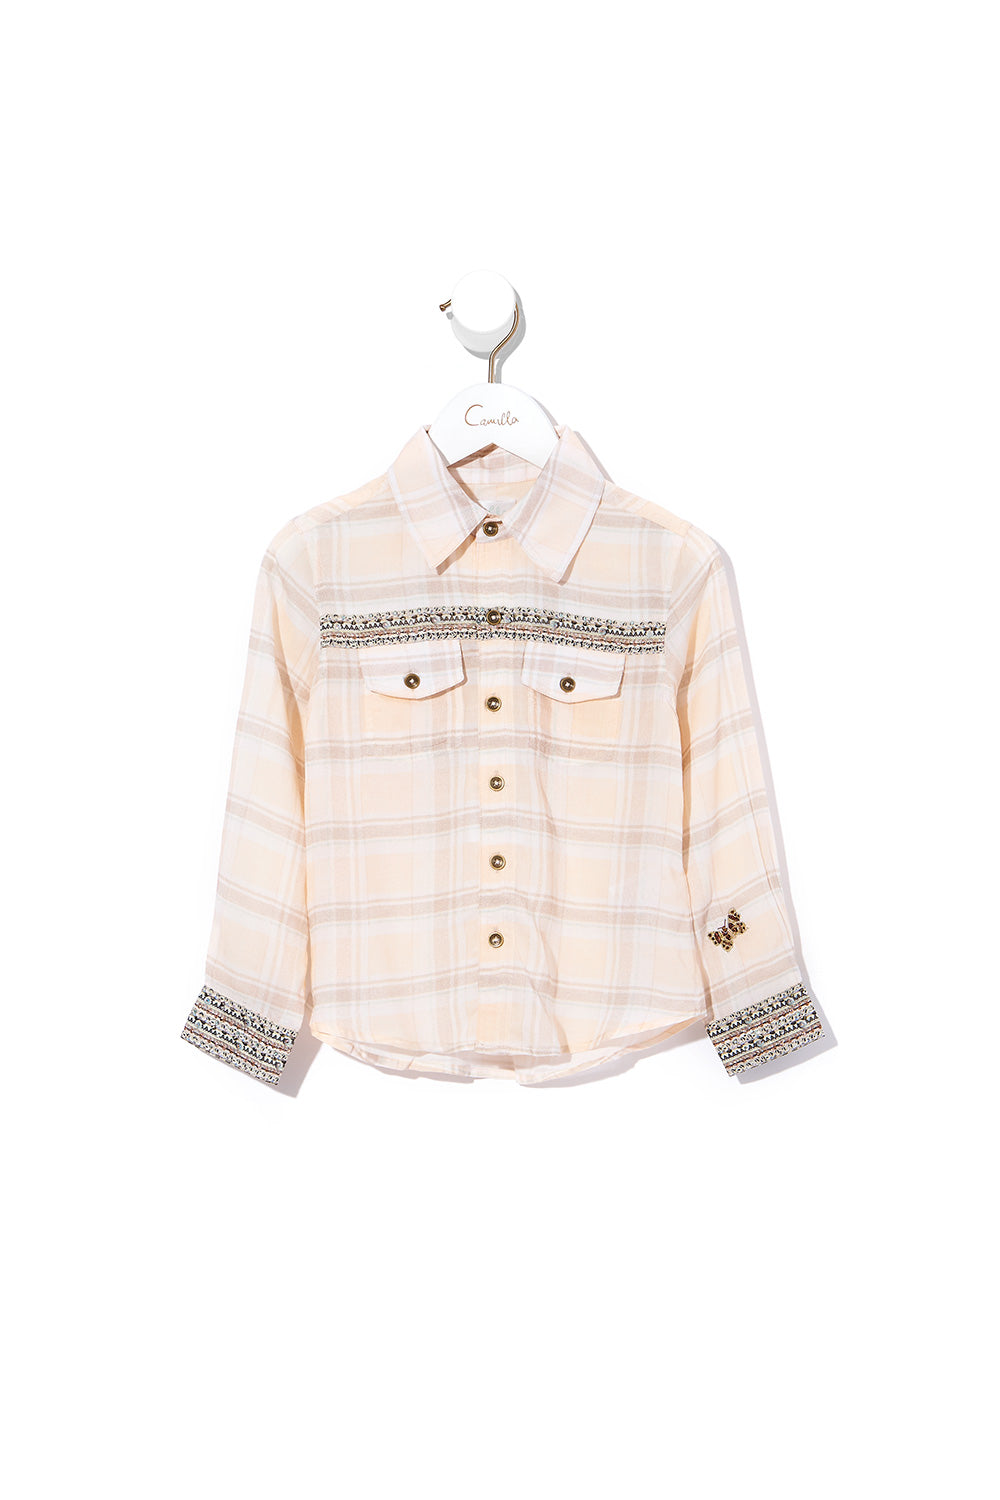 KIDS BUTTON FRONT SHIRT KINDRED SKIES